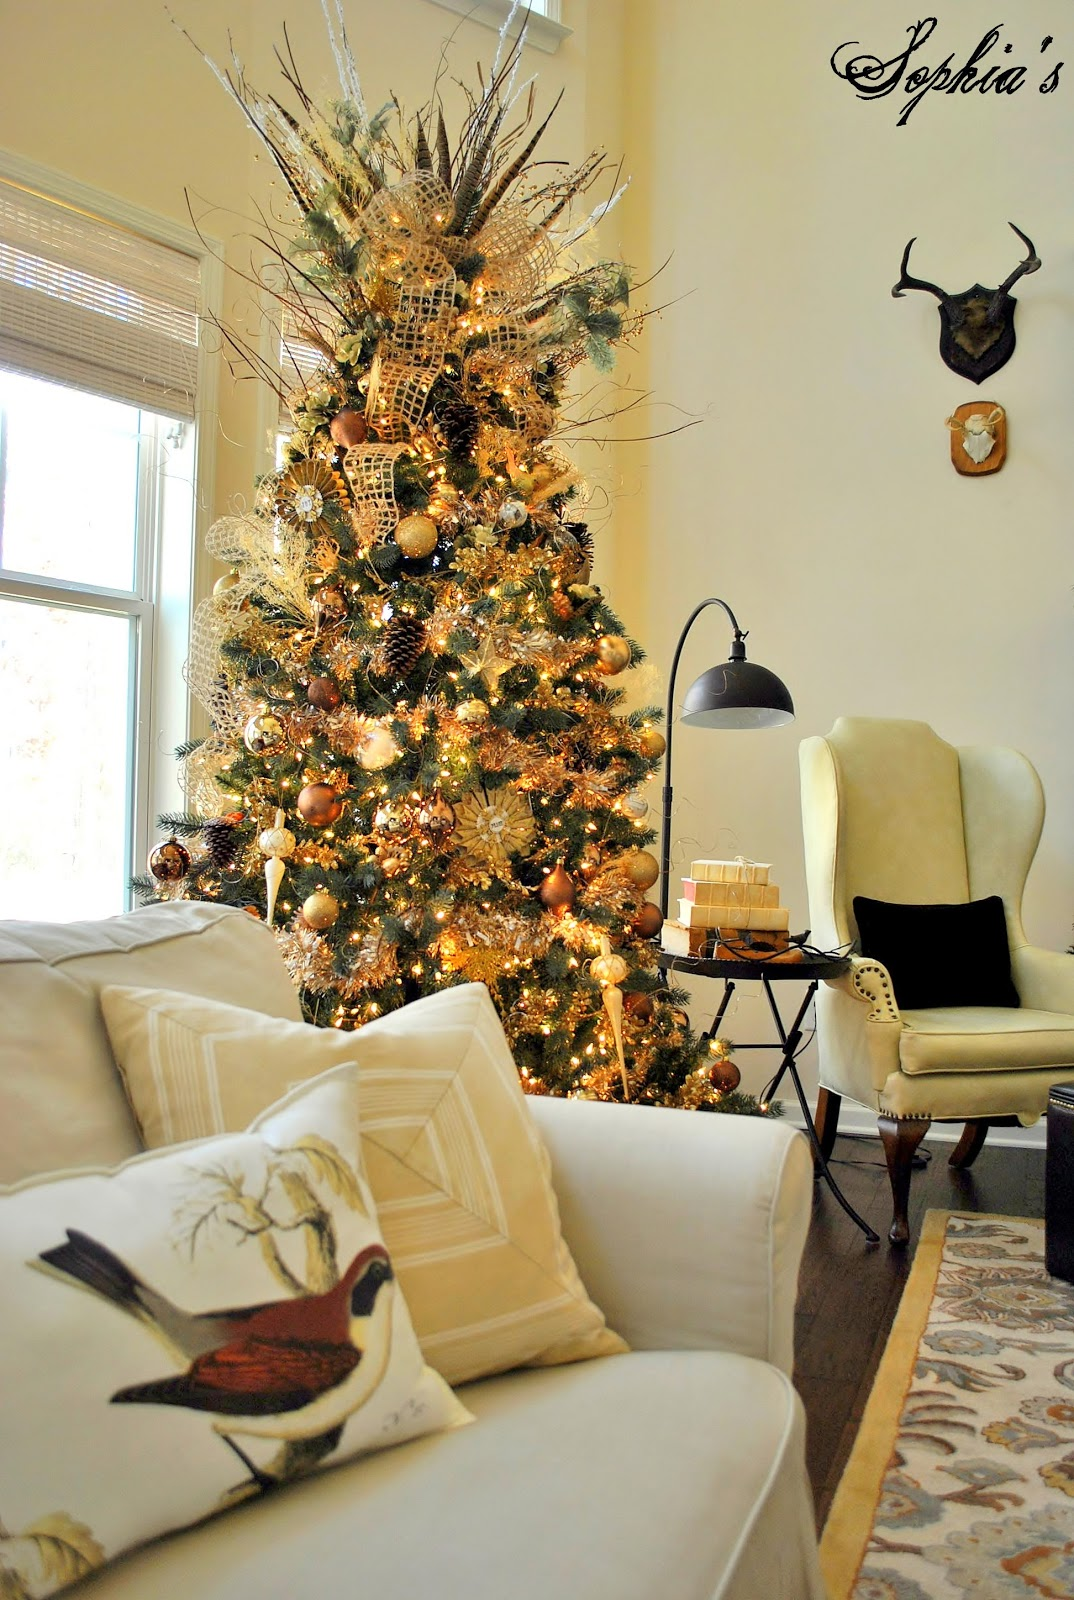 Xmas Decoration Ideas For Living Room: Sophia's: Great Room Rustic Christmas